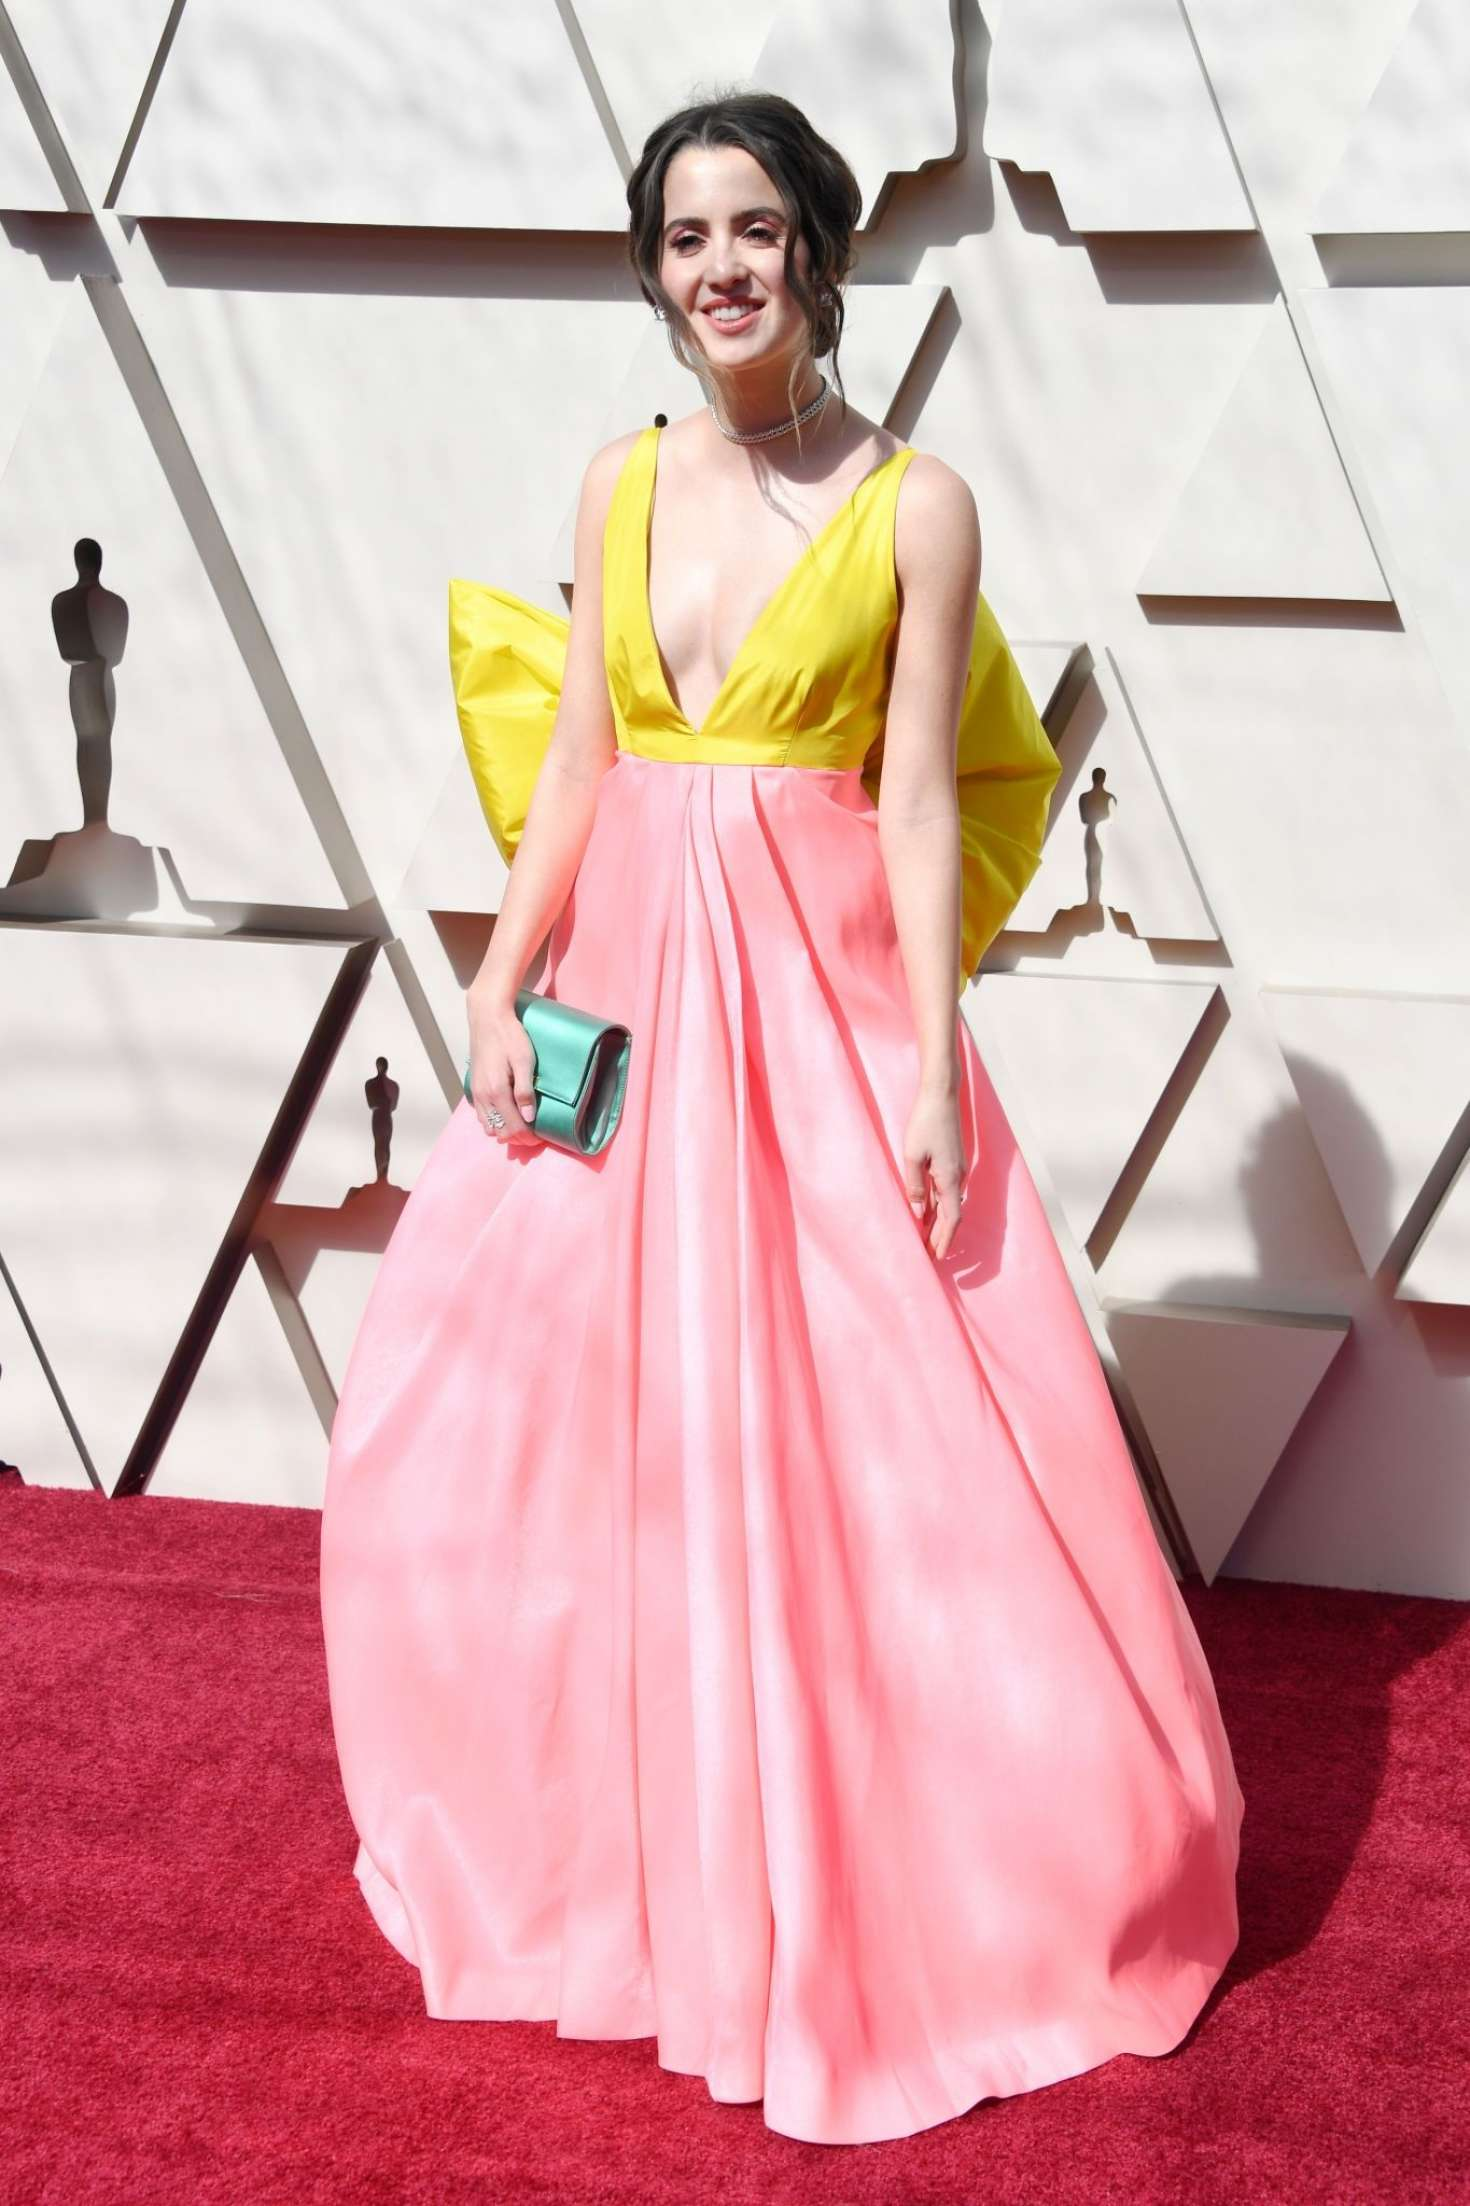 smiles Laura Marano at the Oscars in Los Angeles, 2019